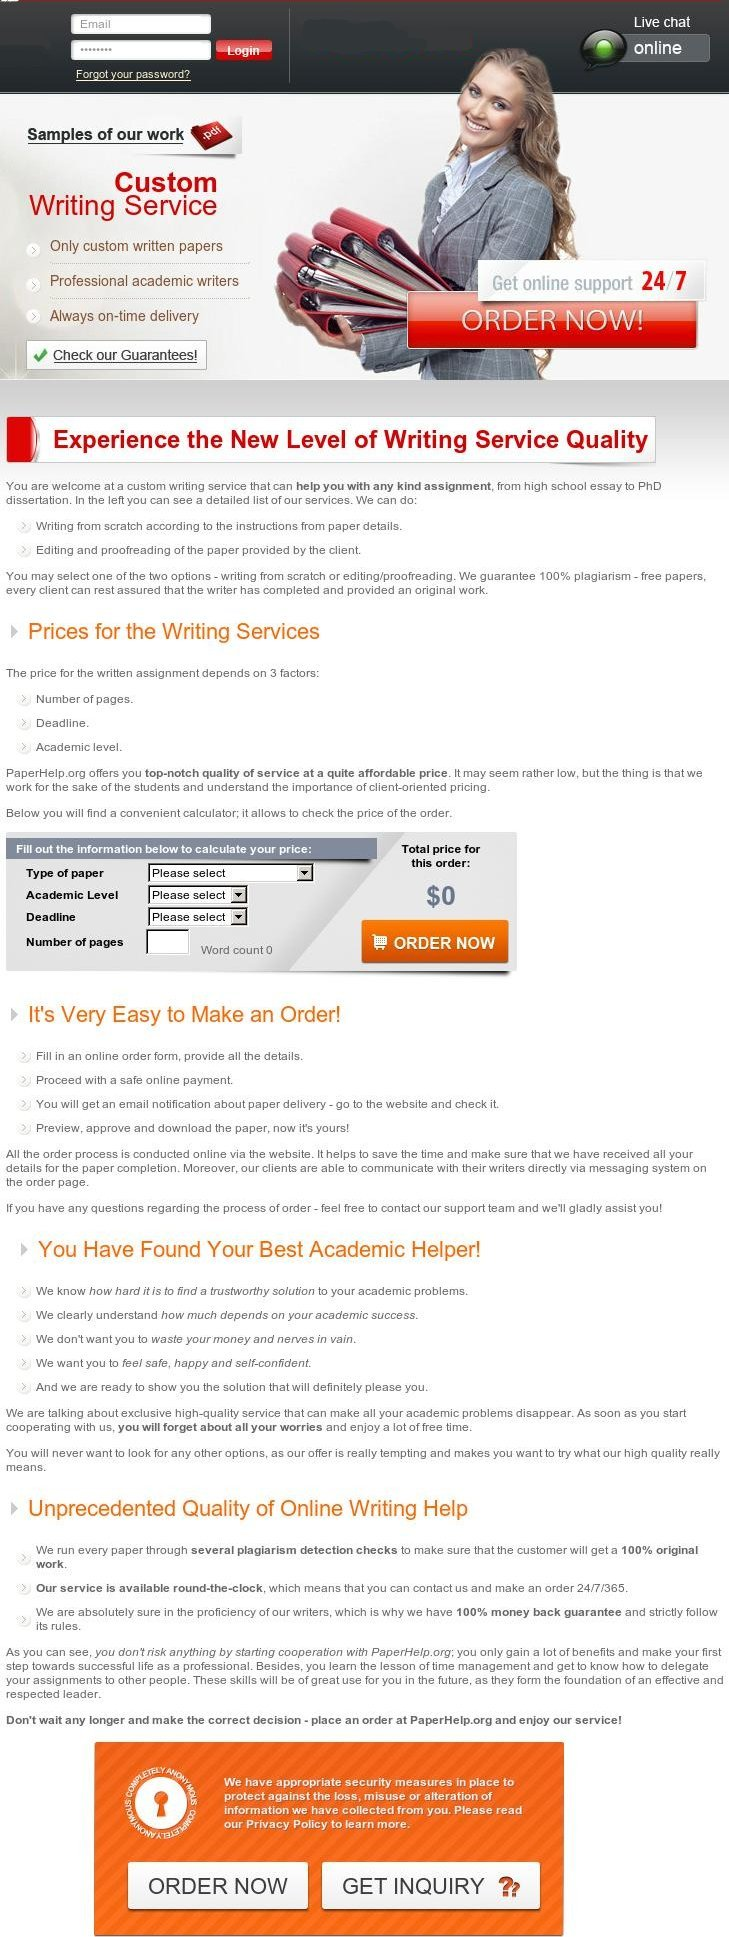 Application essay writing xat 2013